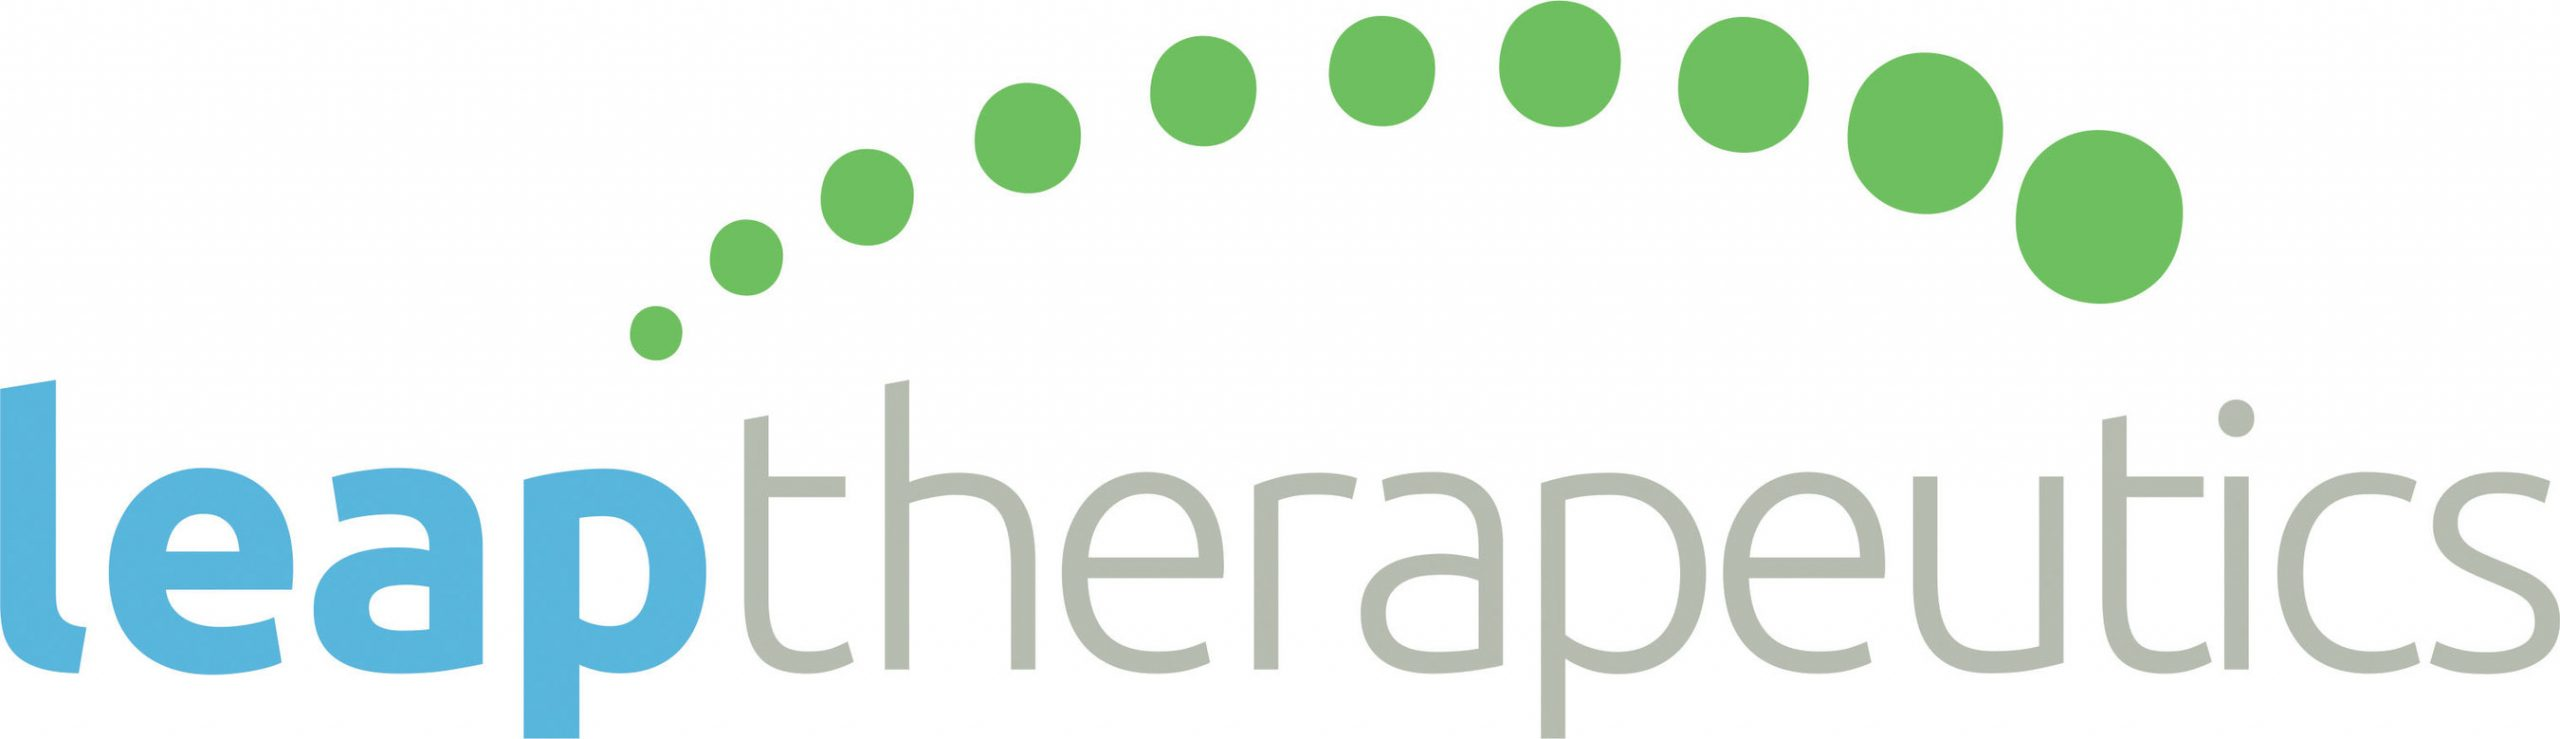 Leap Therapeutics Announces Publication of DKN-01 Mechanism of Action Data in Molecular Cancer Research